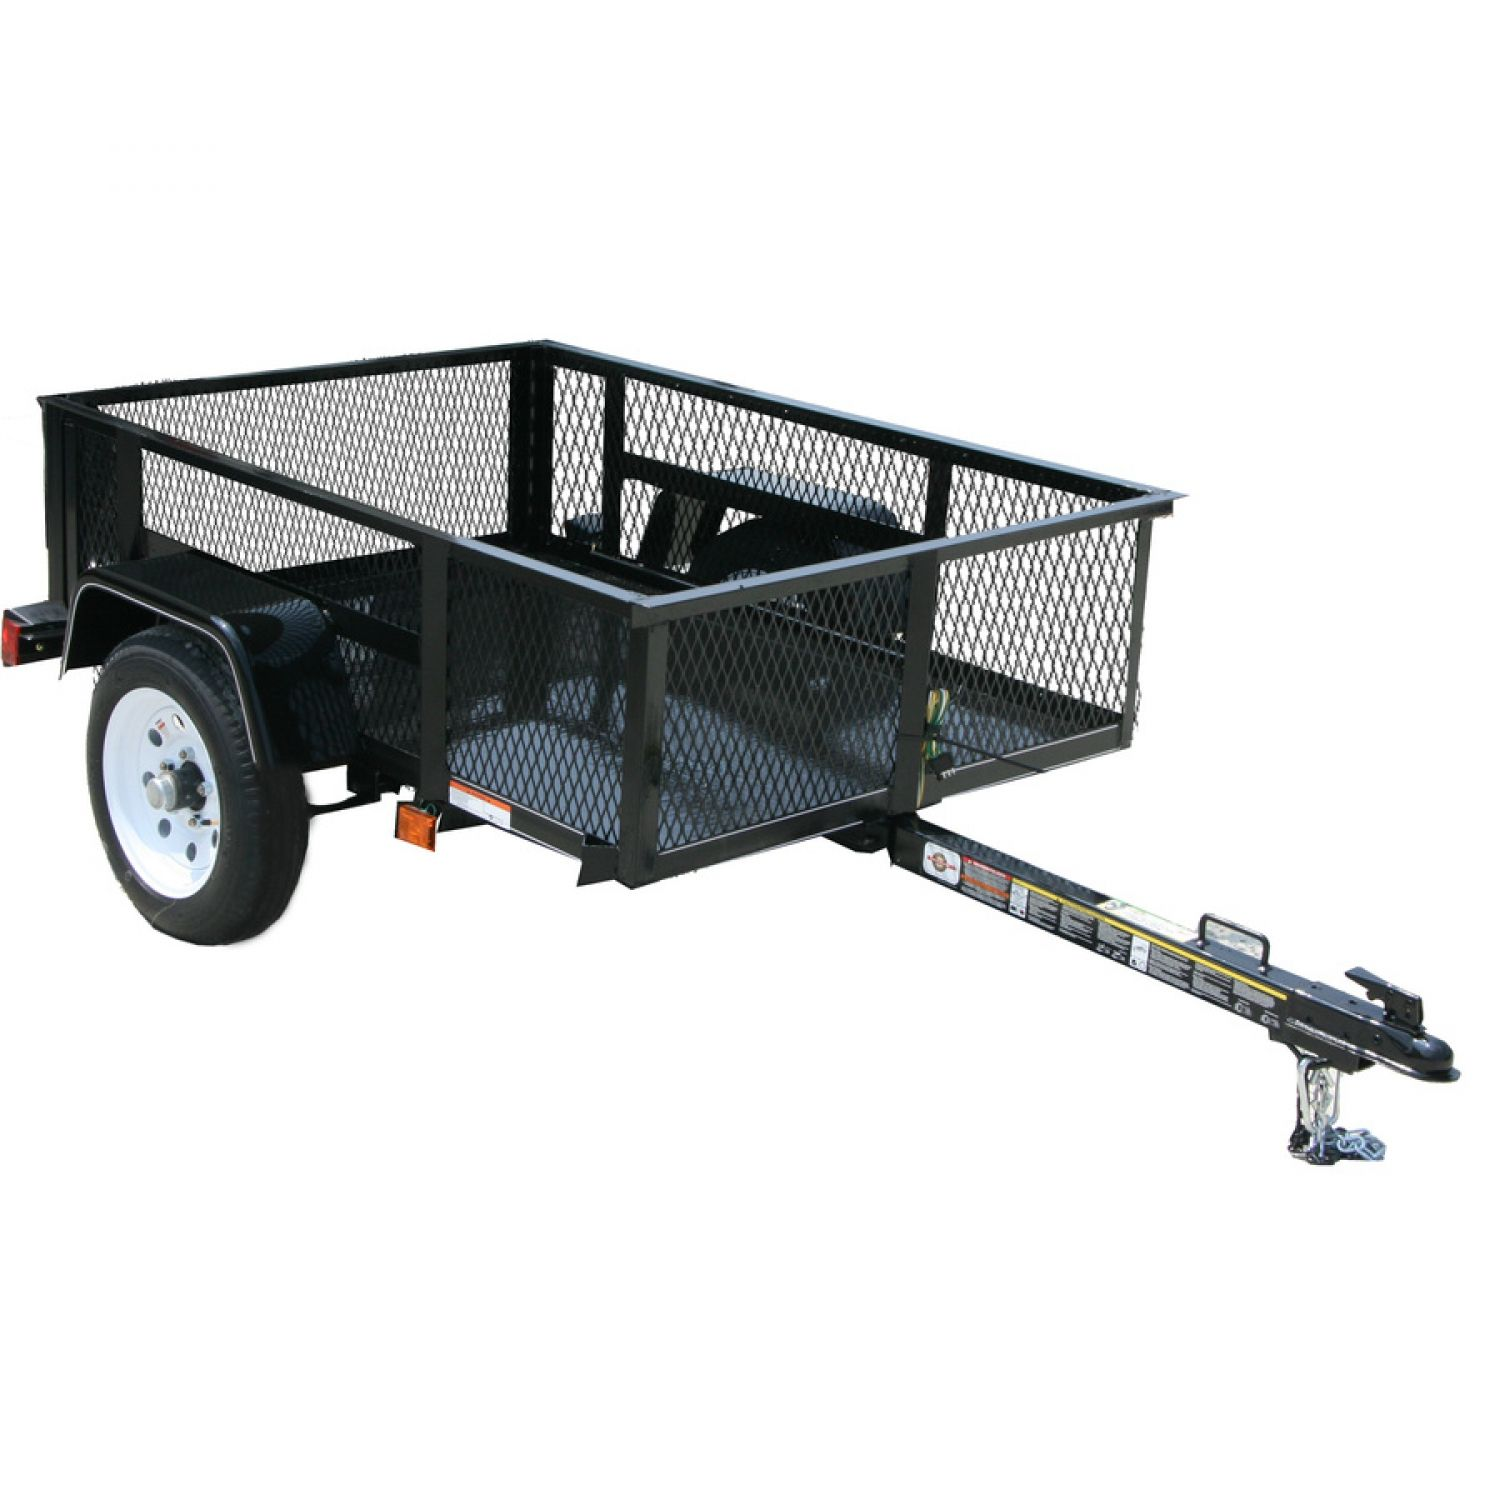 small flatbed trailer - small house trailer Check more at http ...